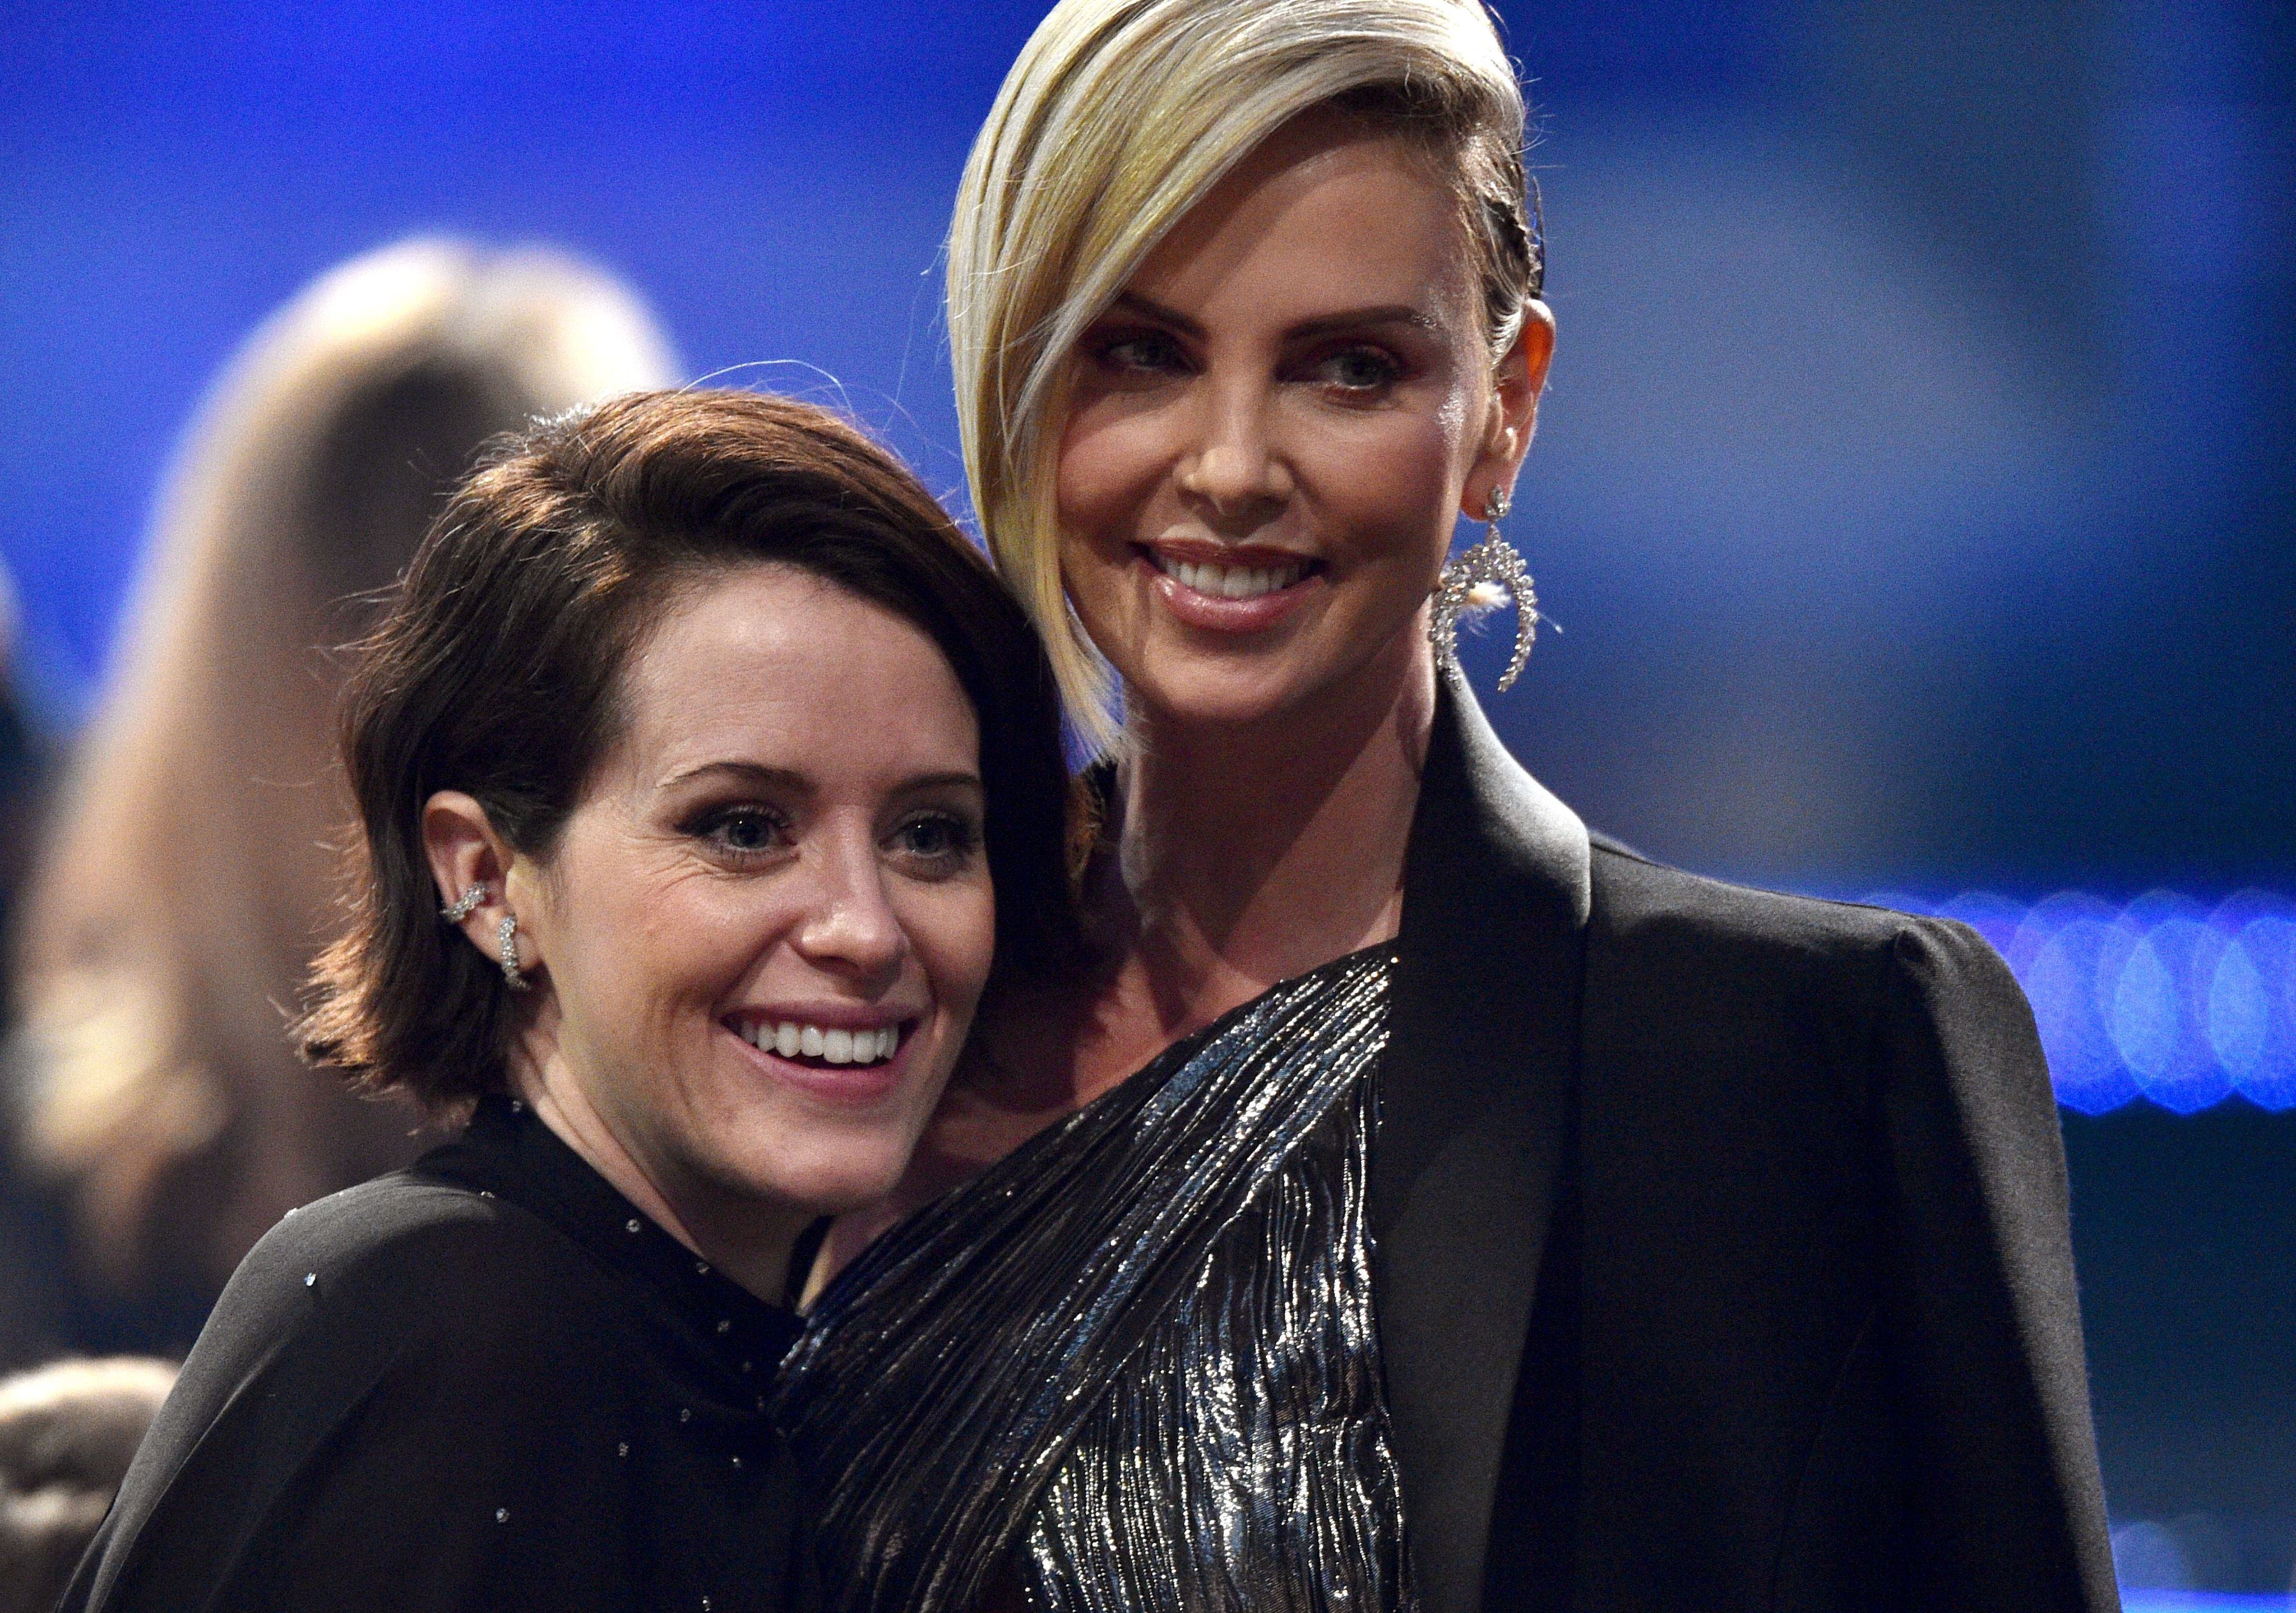 Claire Foy and Charlize Theron attend the 24th Annual Critics' Choice Awards at Barker Hangar in Santa Monica, California, on Jan. 13, 2019.